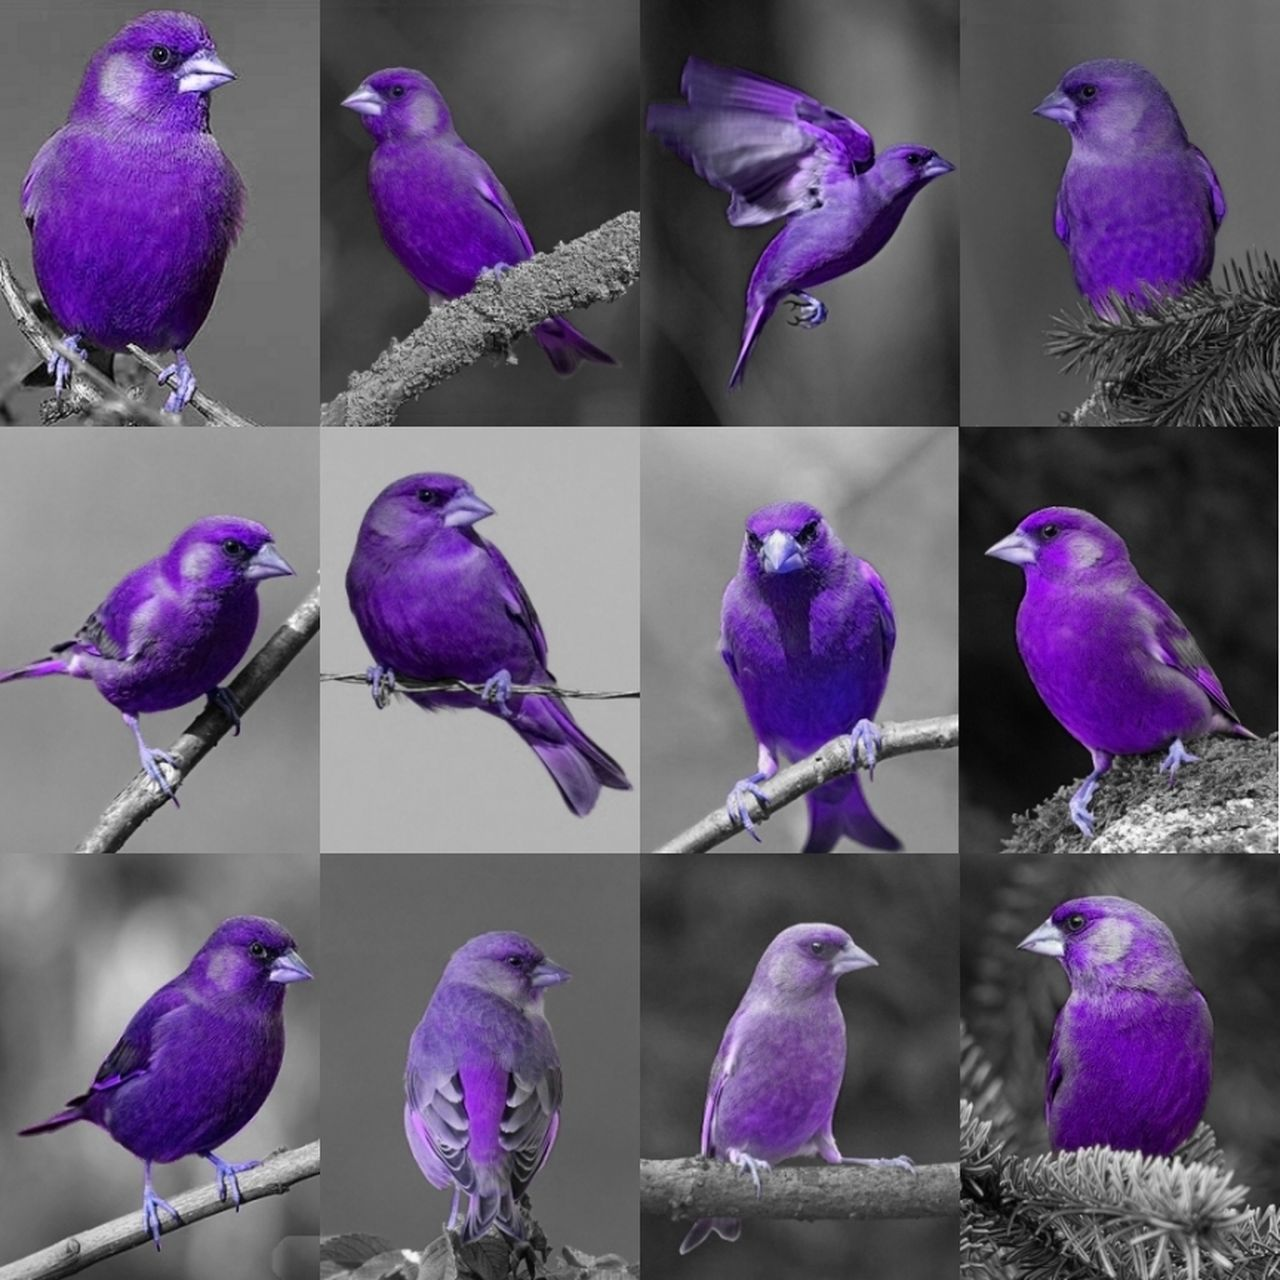 Everything In Its Place Purple Birds Purple Birds🐦⛅ Birds Check This Out Enjoying Life Beautiful Modern Art Magical Amazing Today :)